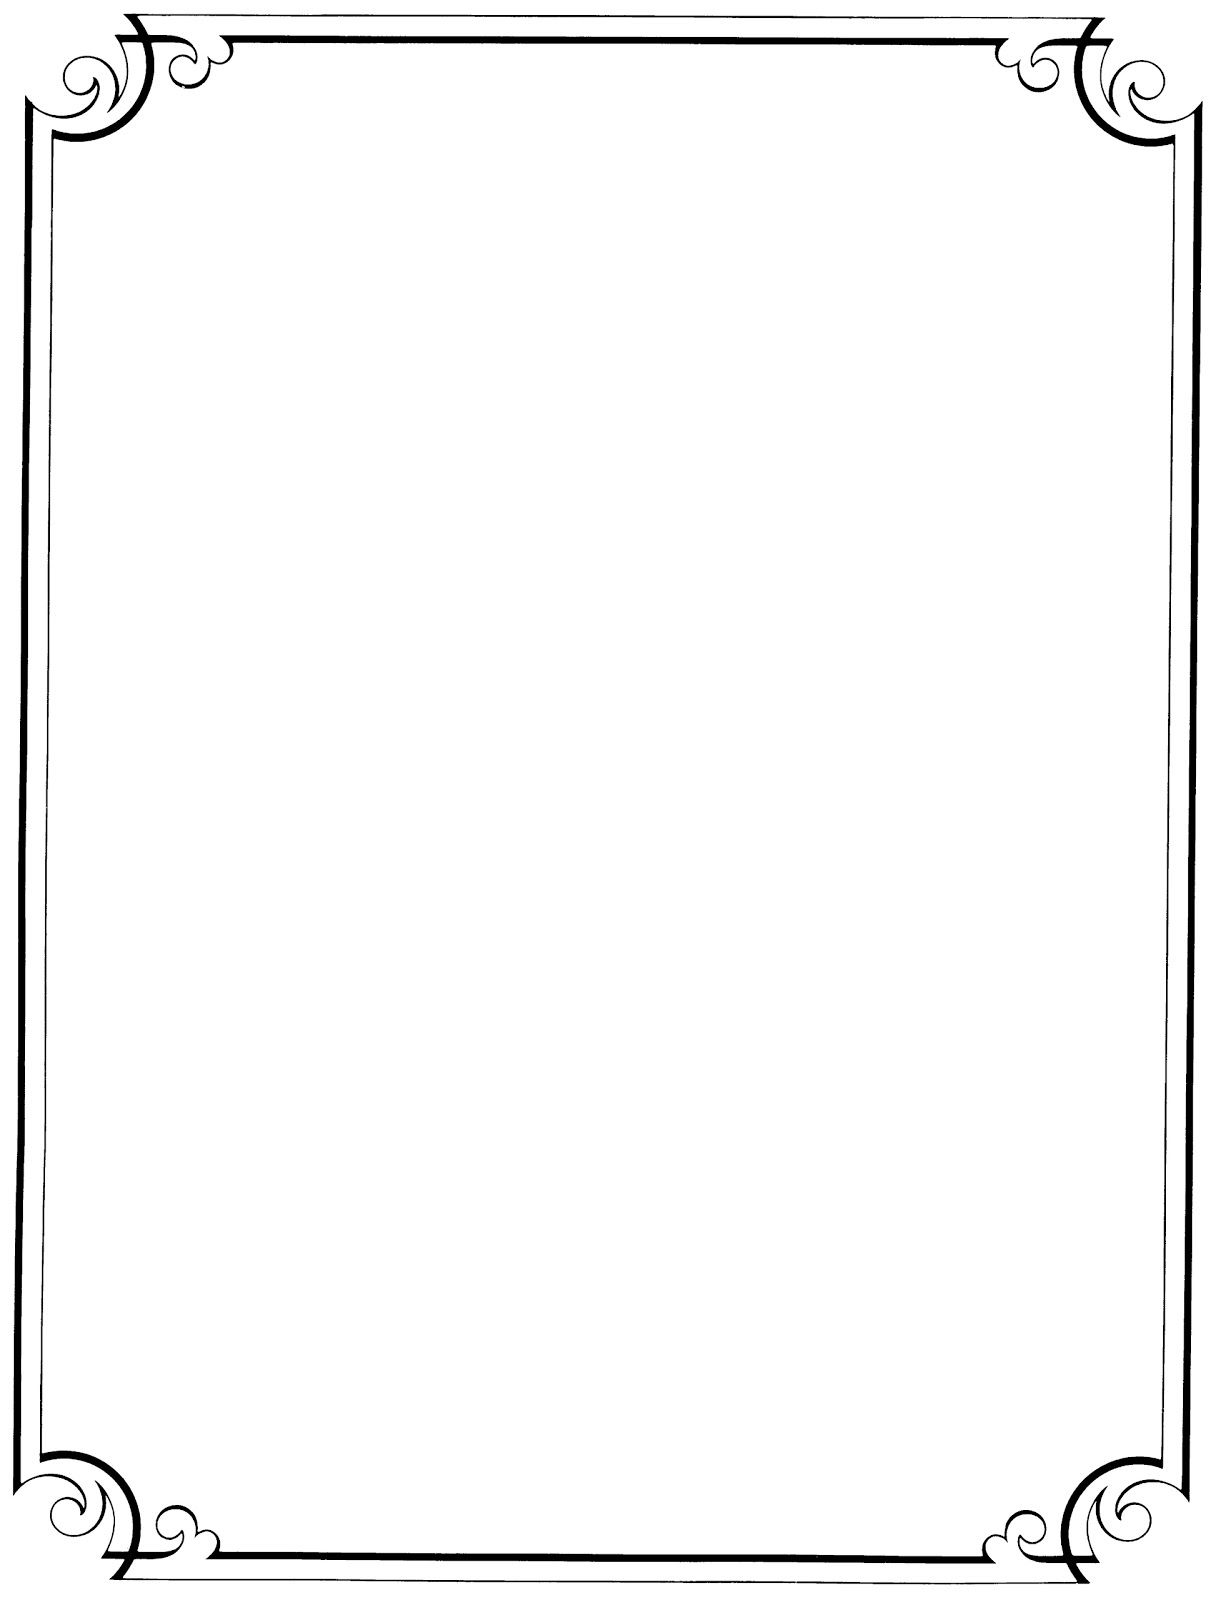 Free Clip Art Page Borders and Frames.